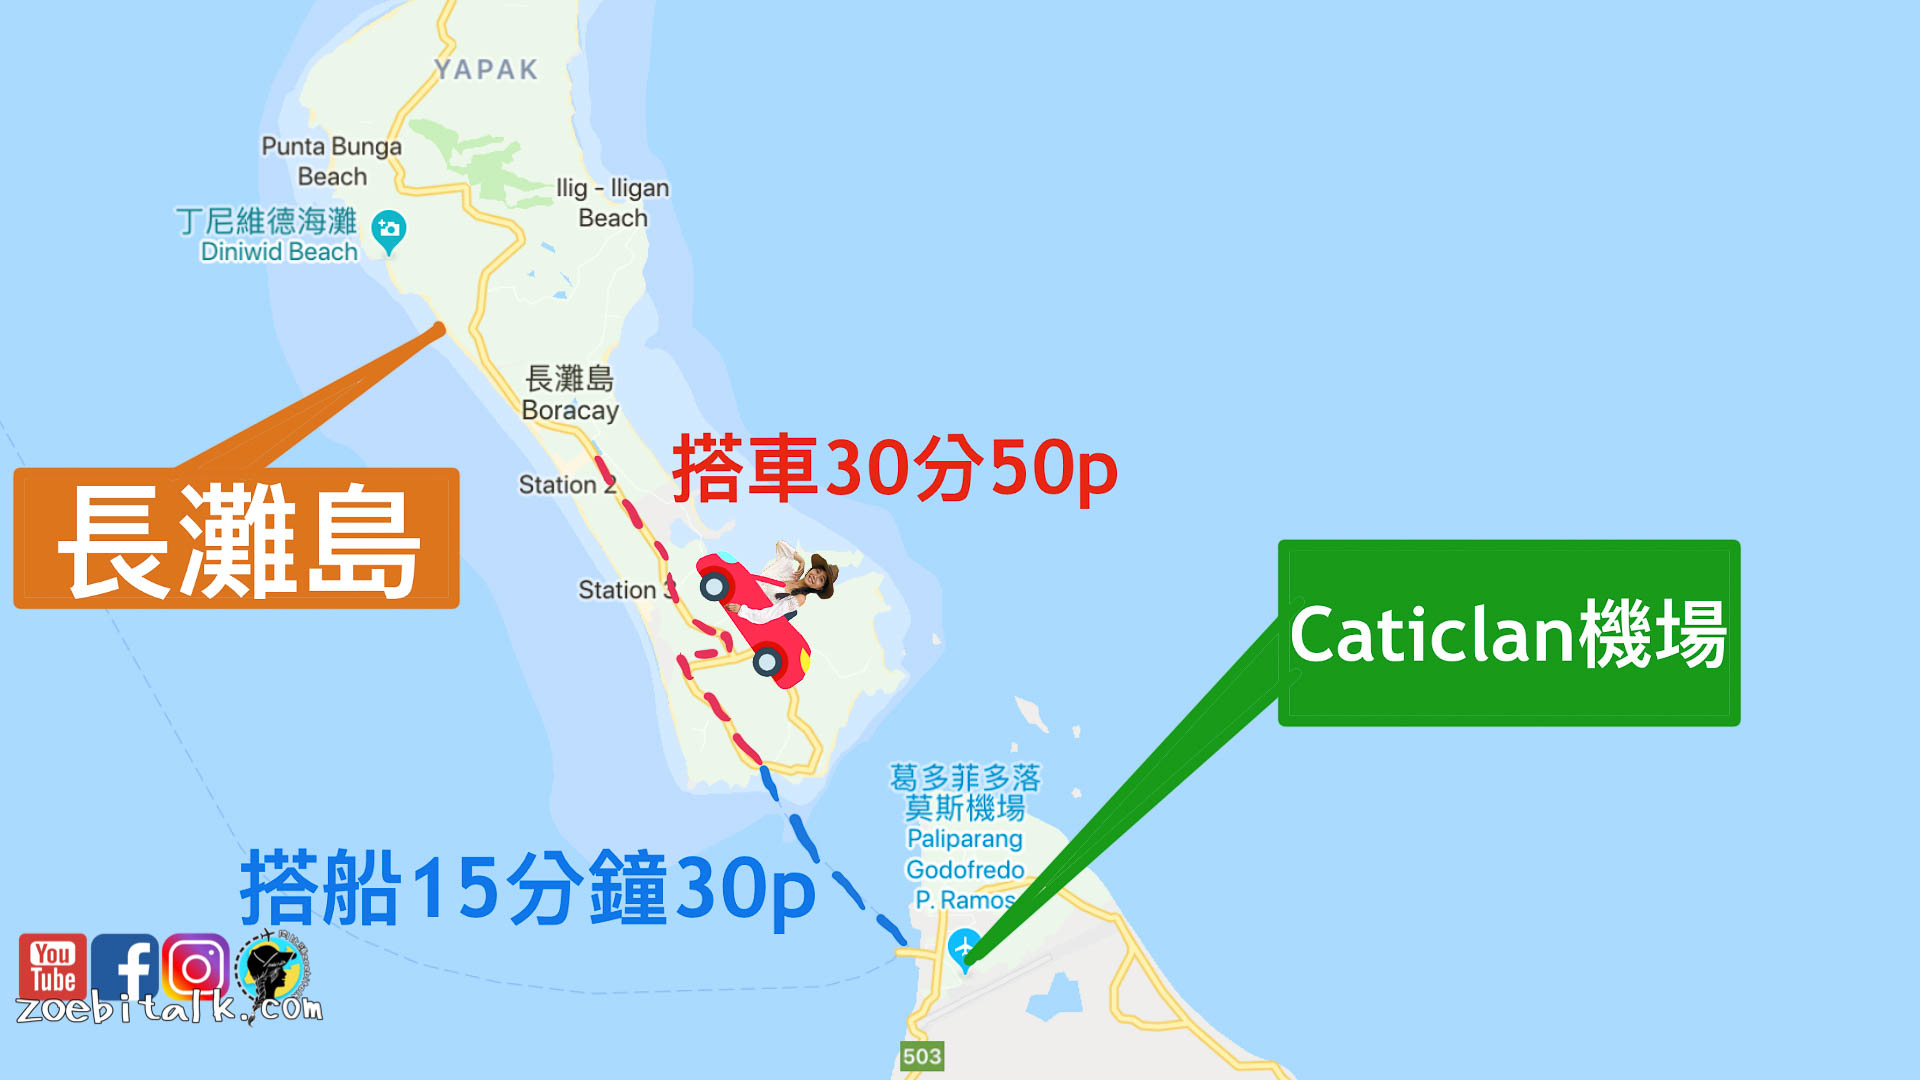 how to go boracy from Caticlan Airport